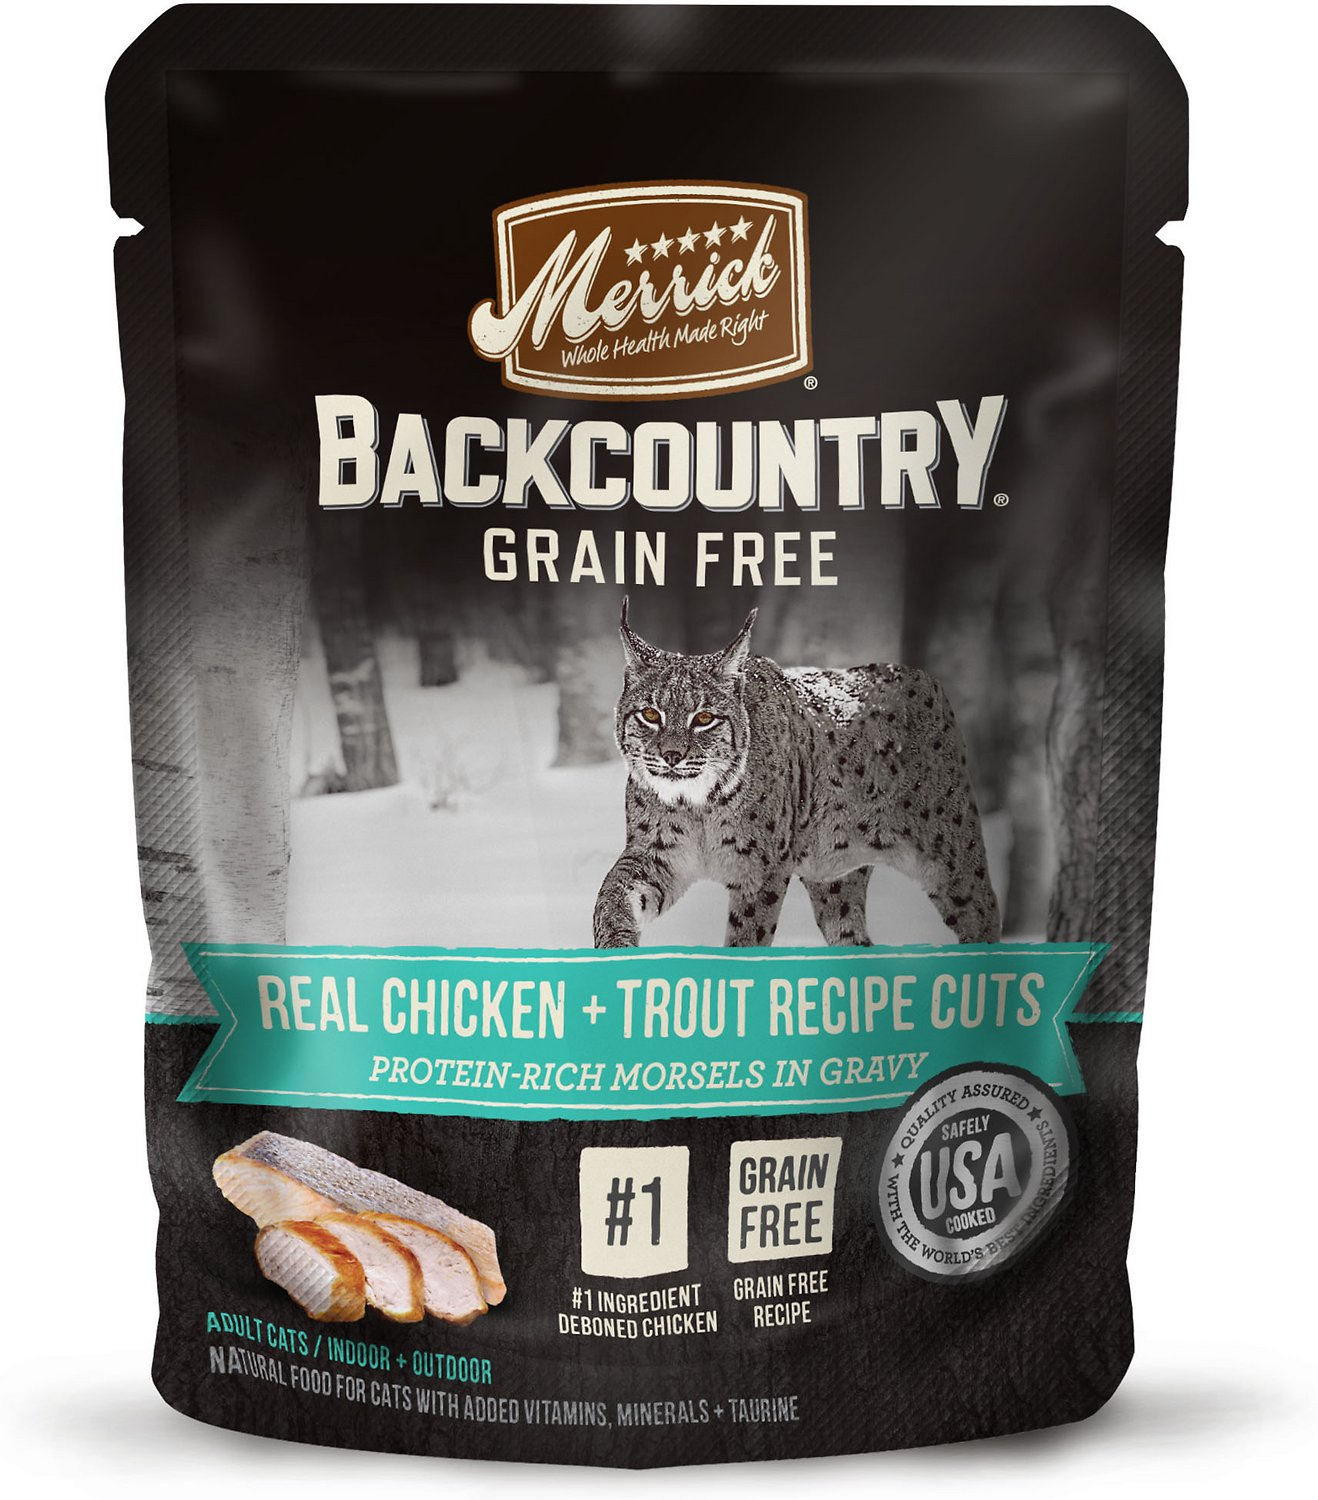 Merrick Backcountry Grain-Free Real Chicken & Trout Recipe Cuts Morsels in Gravy Cat Food Pouches, 3-oz, case of 24